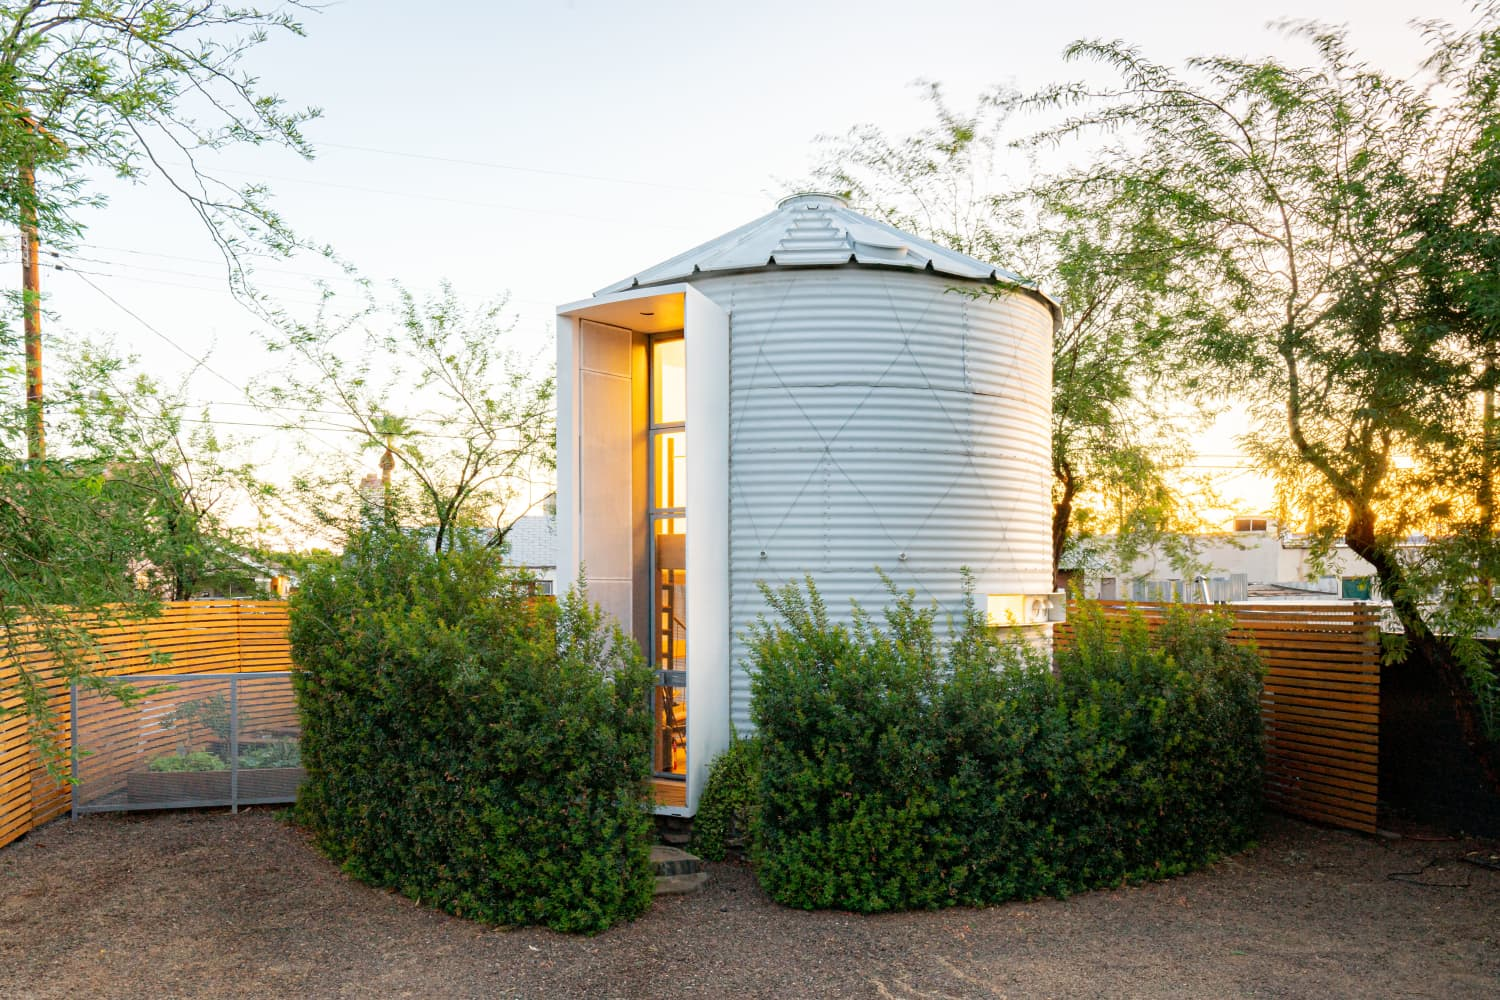 4 Things to Know About Living in a Grain Silo House, According to Someone Who Built One